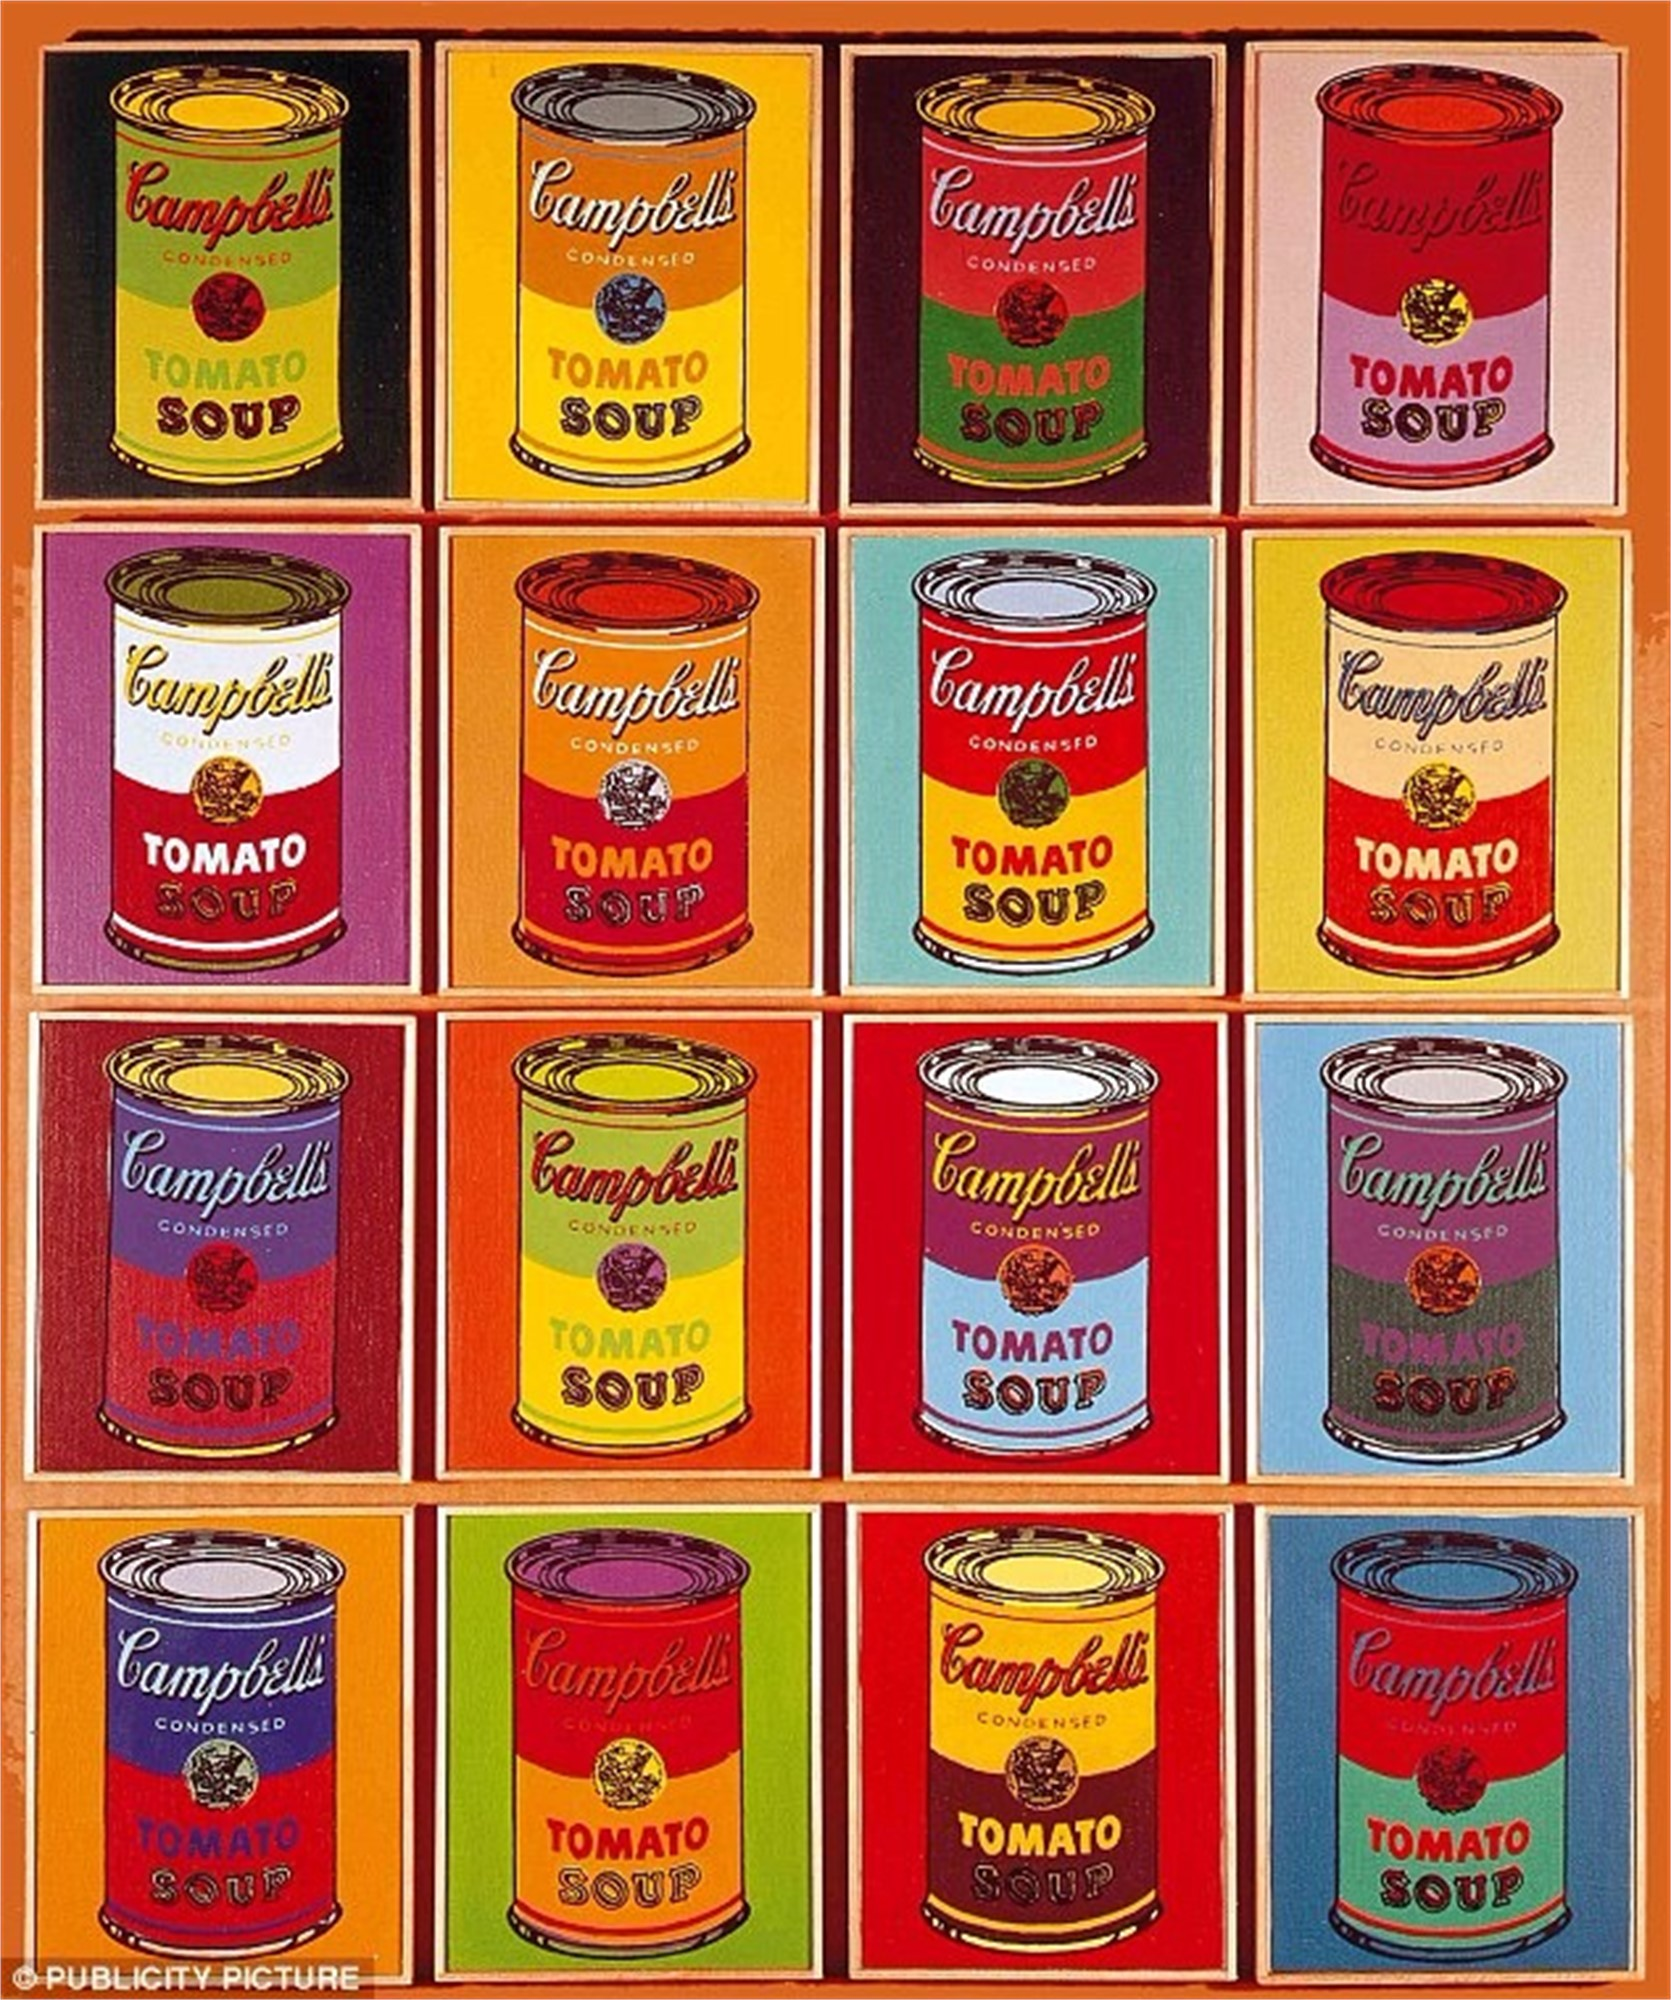 Campbell S Soup Cans By Andy Warhol Artcloud Andy Warhol Art Andy Warhol Pop Art Andy Warhol Inspired